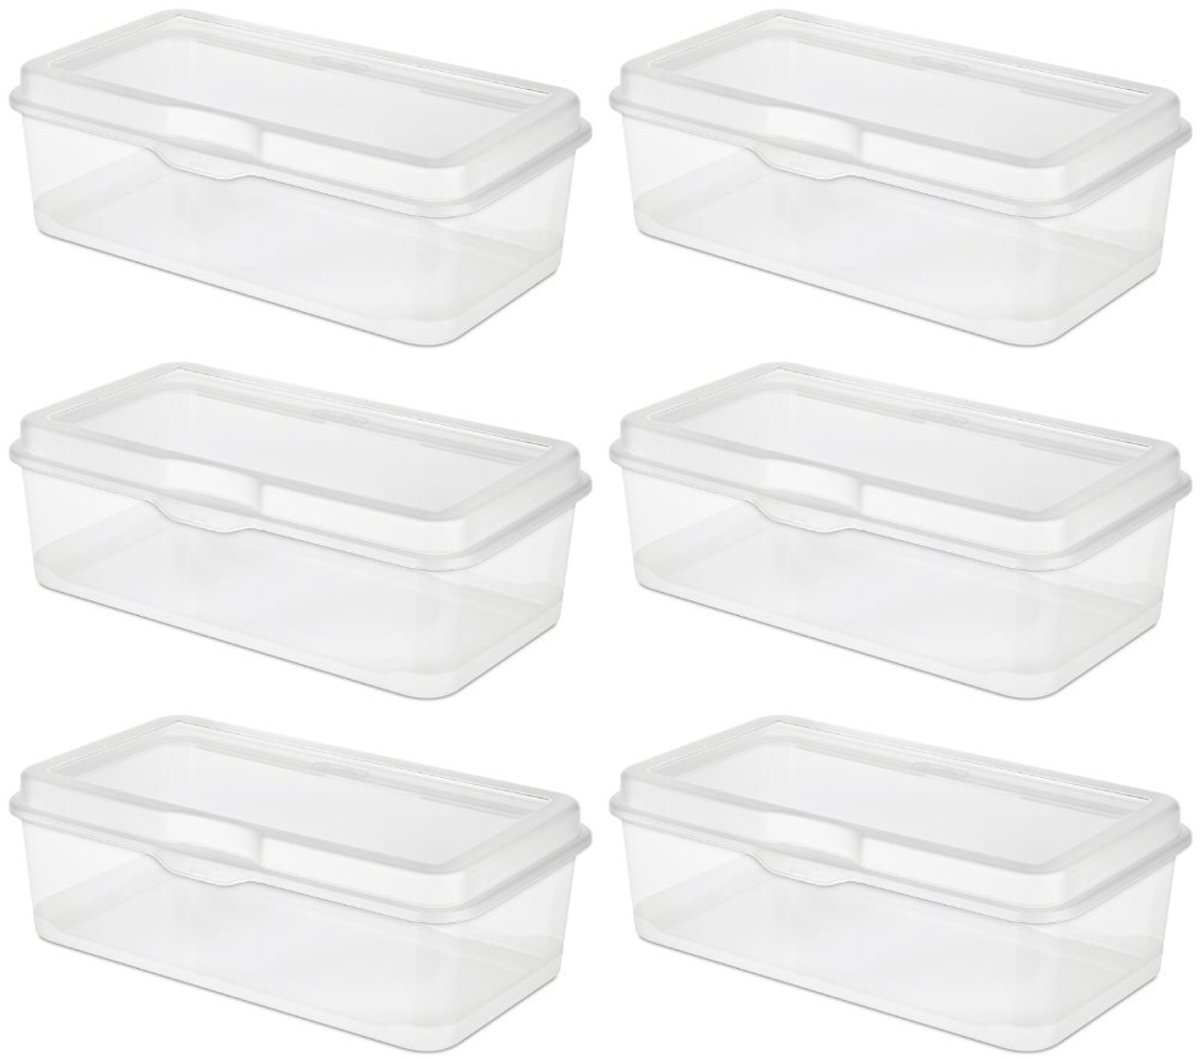 6 pack sterilite plastic fliptop latching storage box container clear